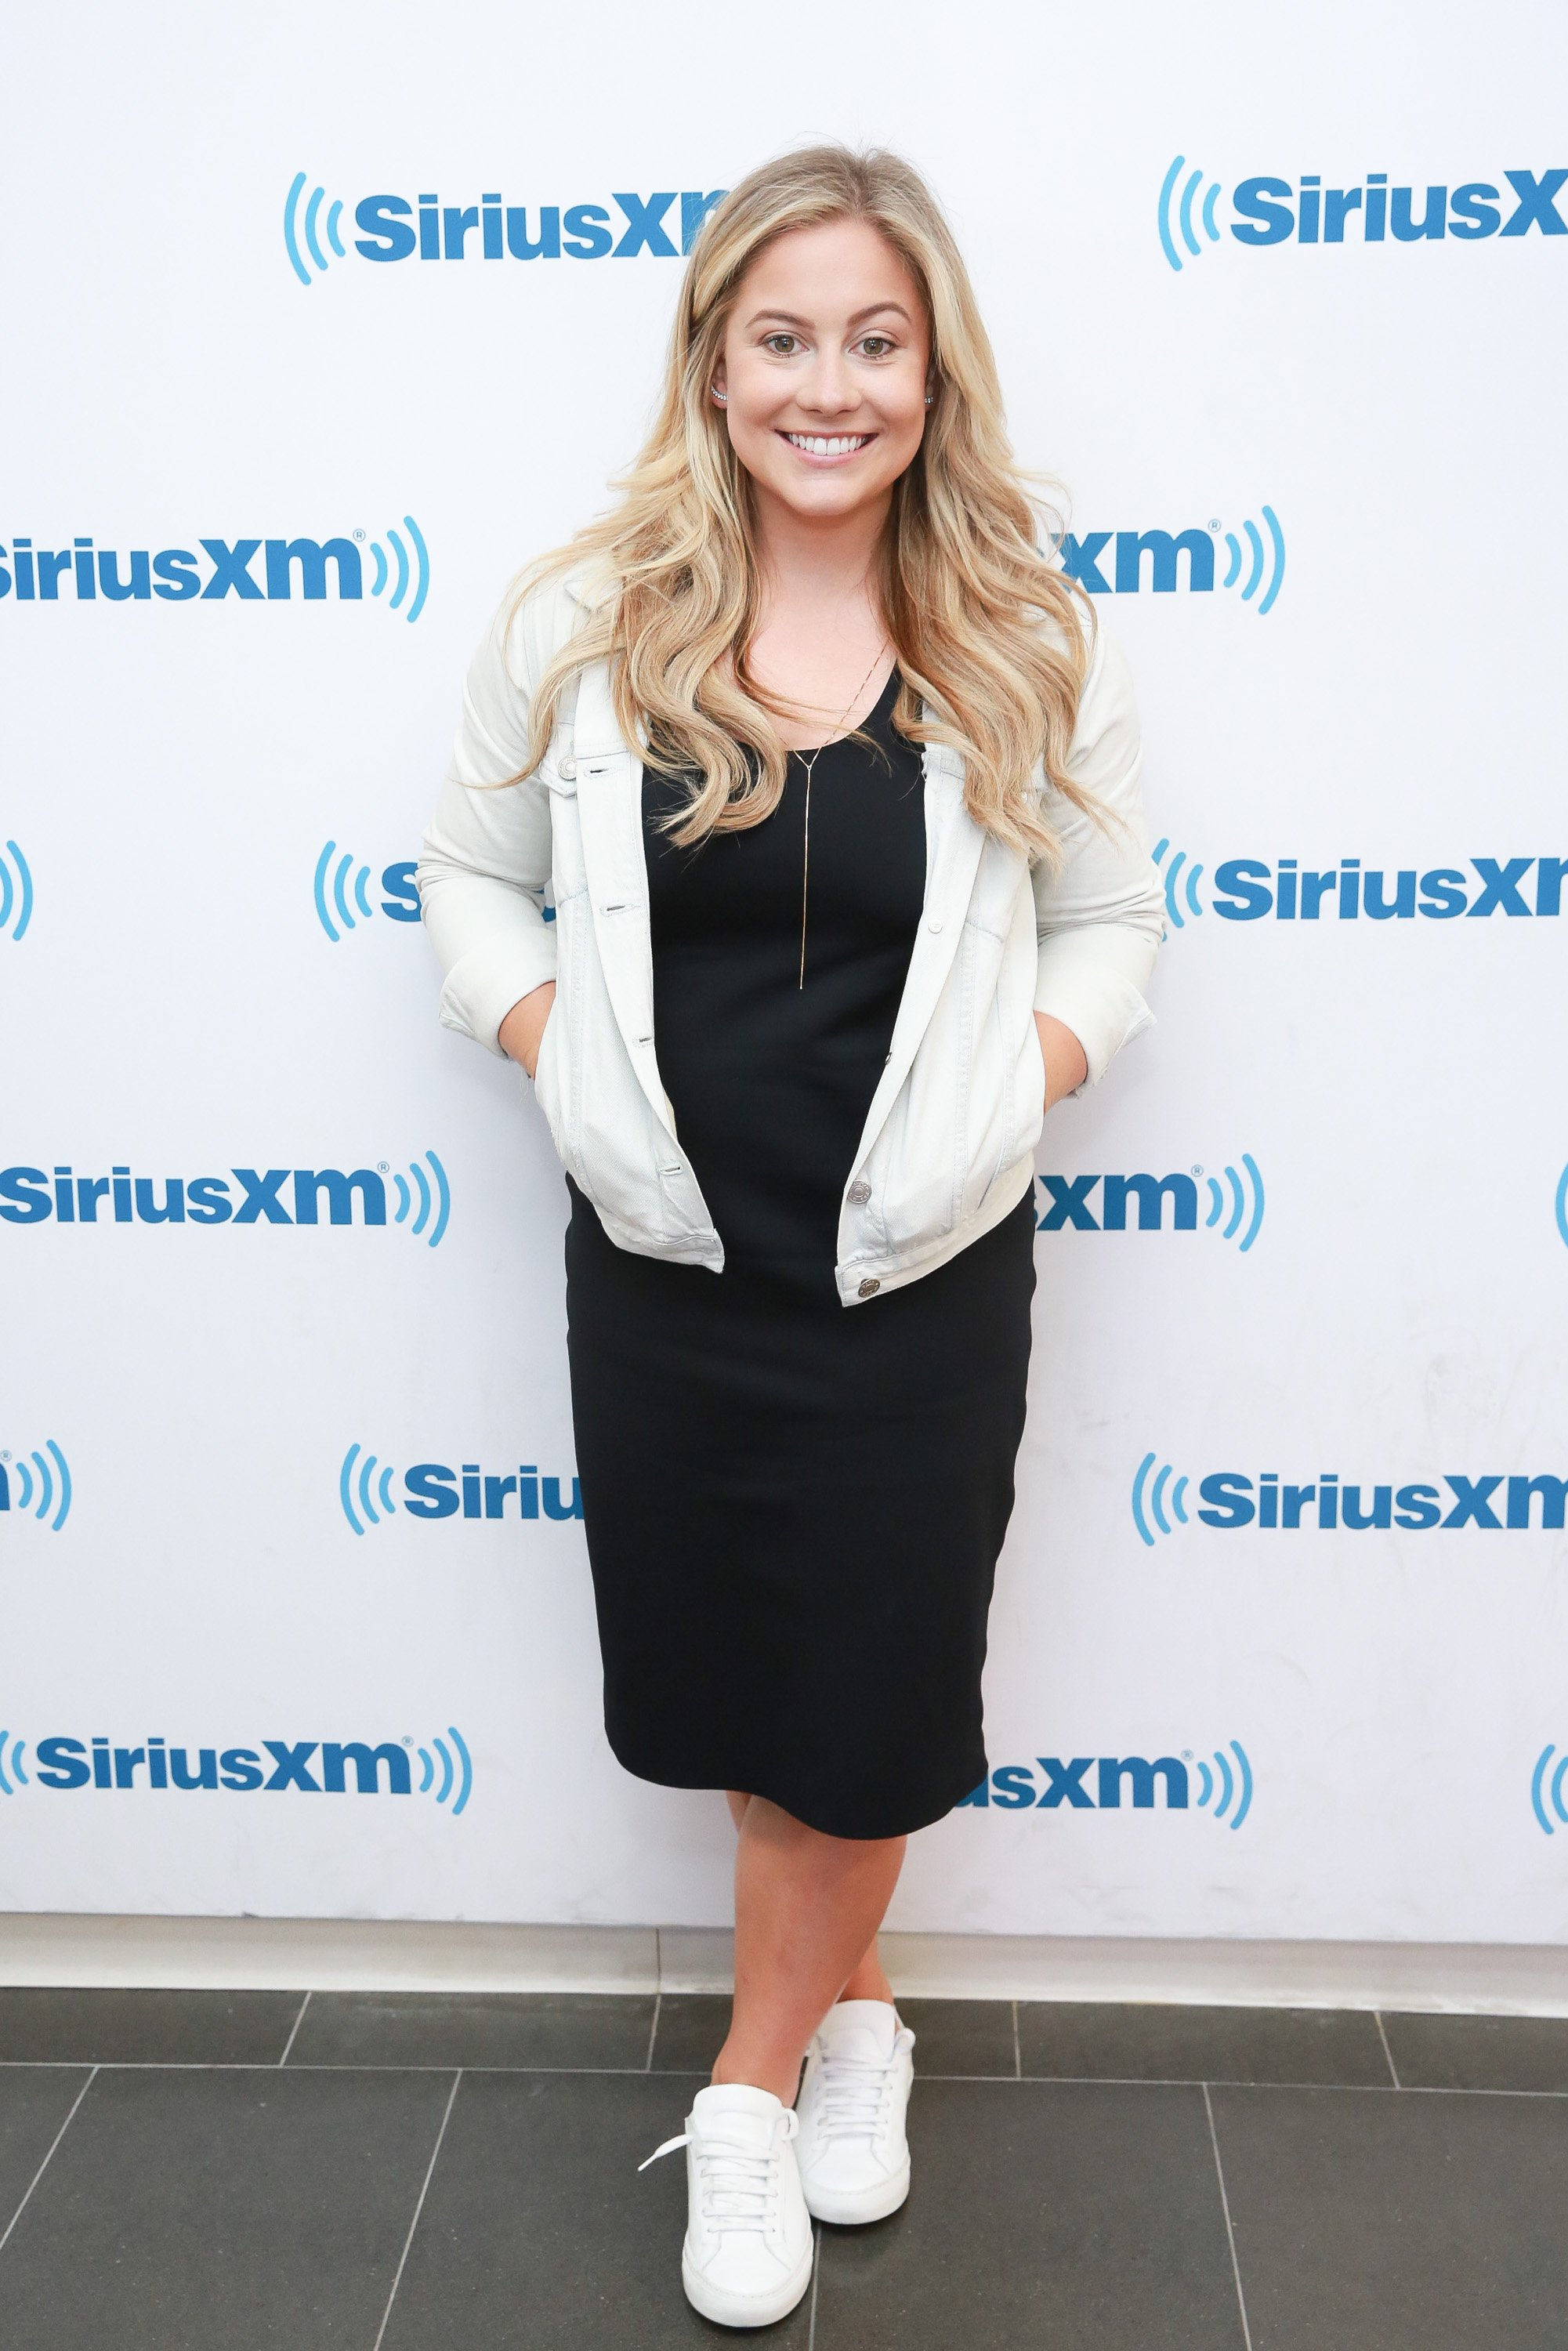 Shawn Johnson visits at SiriusXM Studio on July 26, 2016 in New York City. | Source: Getty Images